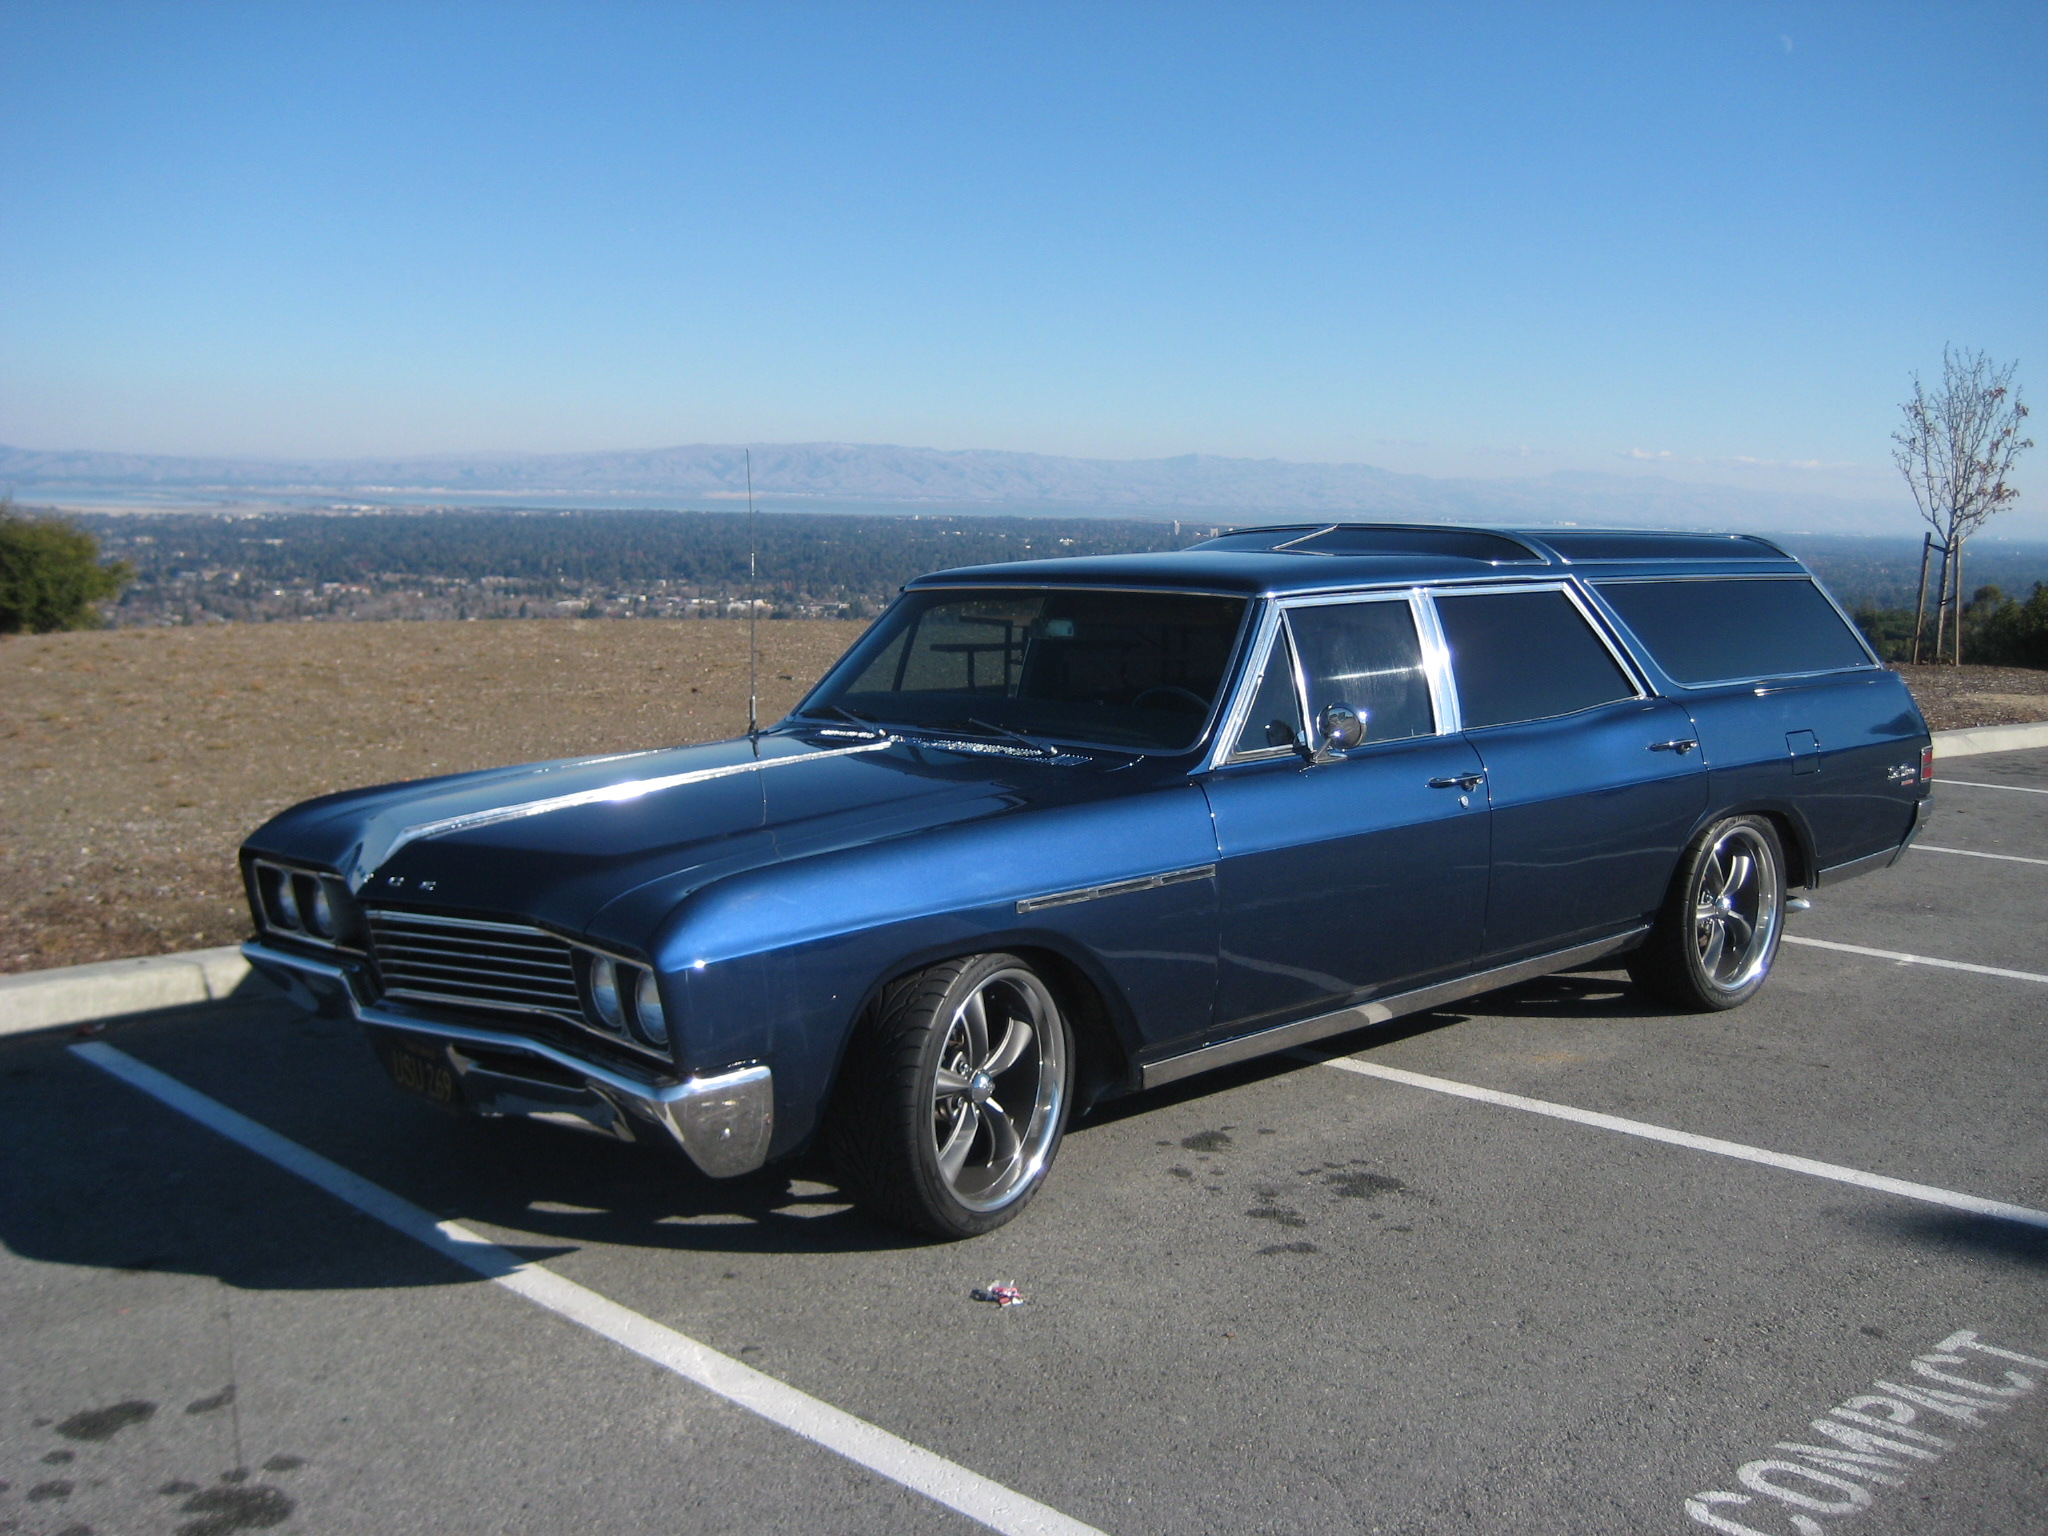 Buick sportwagon photo - 8